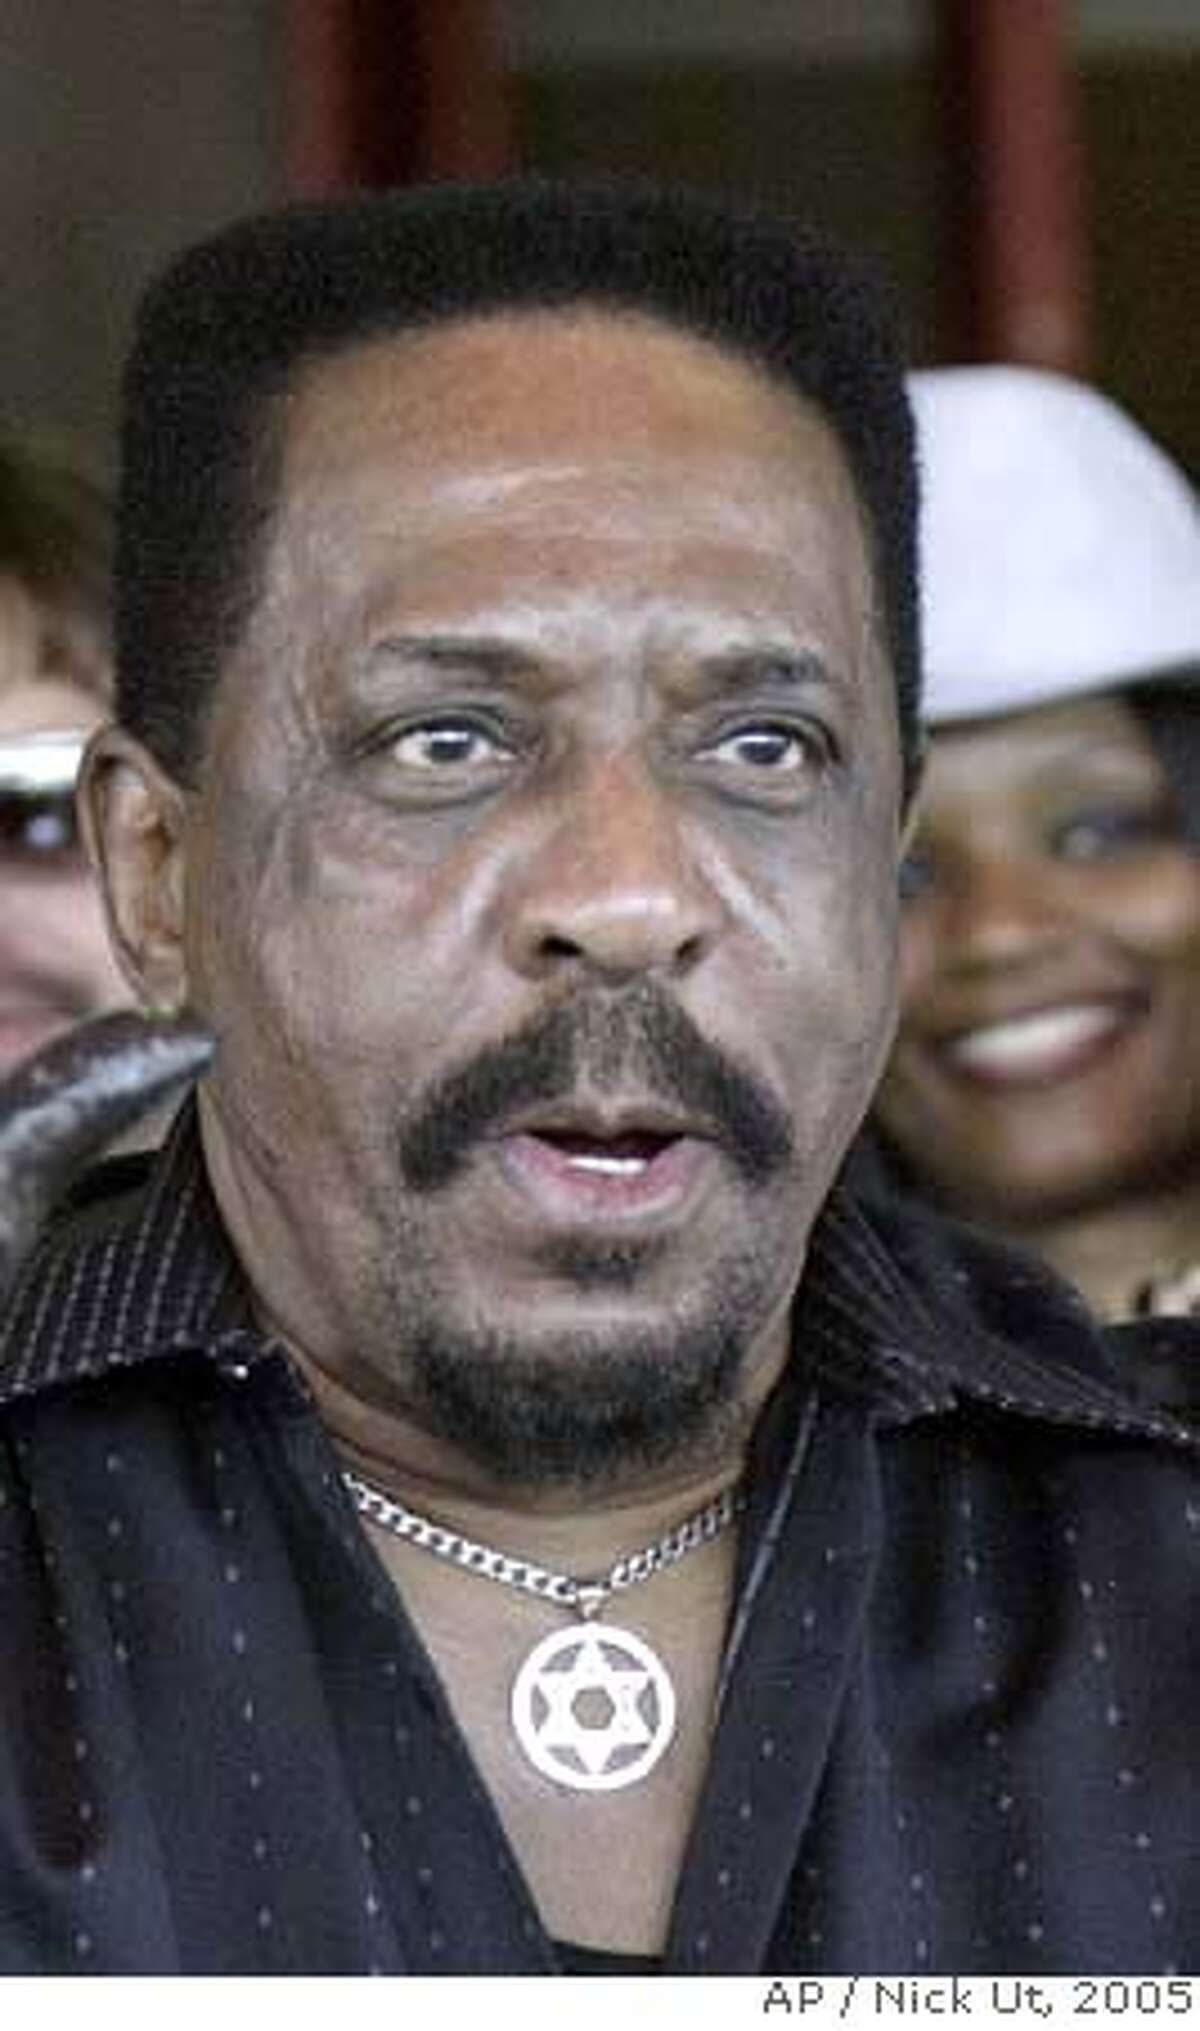 **FILE** Ike Turner poses during a ceremony inducting him into the Hollywood Rock Walk, on April 4, 2005, in Los Angeles. A medical examiner has found that musician Ike Turner died of a cocaine overdose, according to a report Wednesday Jan. 16, 2008. (AP Photo/Nick Ut, File) APRIL 4 2005 FILE